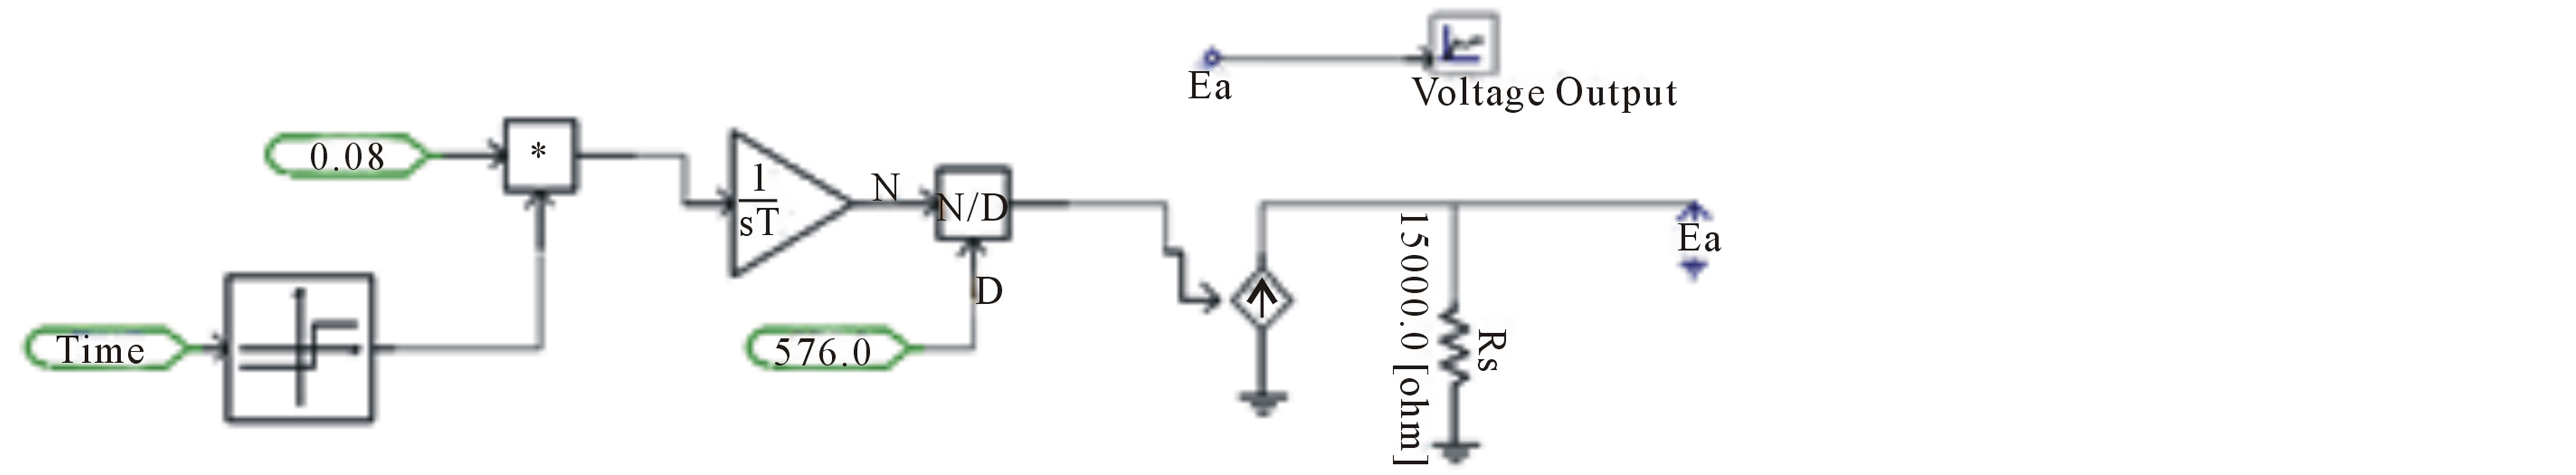 Large Prismatic Lithium Iron Phosphate Battery Cell Model Using Pscad Calculating Rc Circuit Matlab Electrical Engineering Varying Soc Equivalent